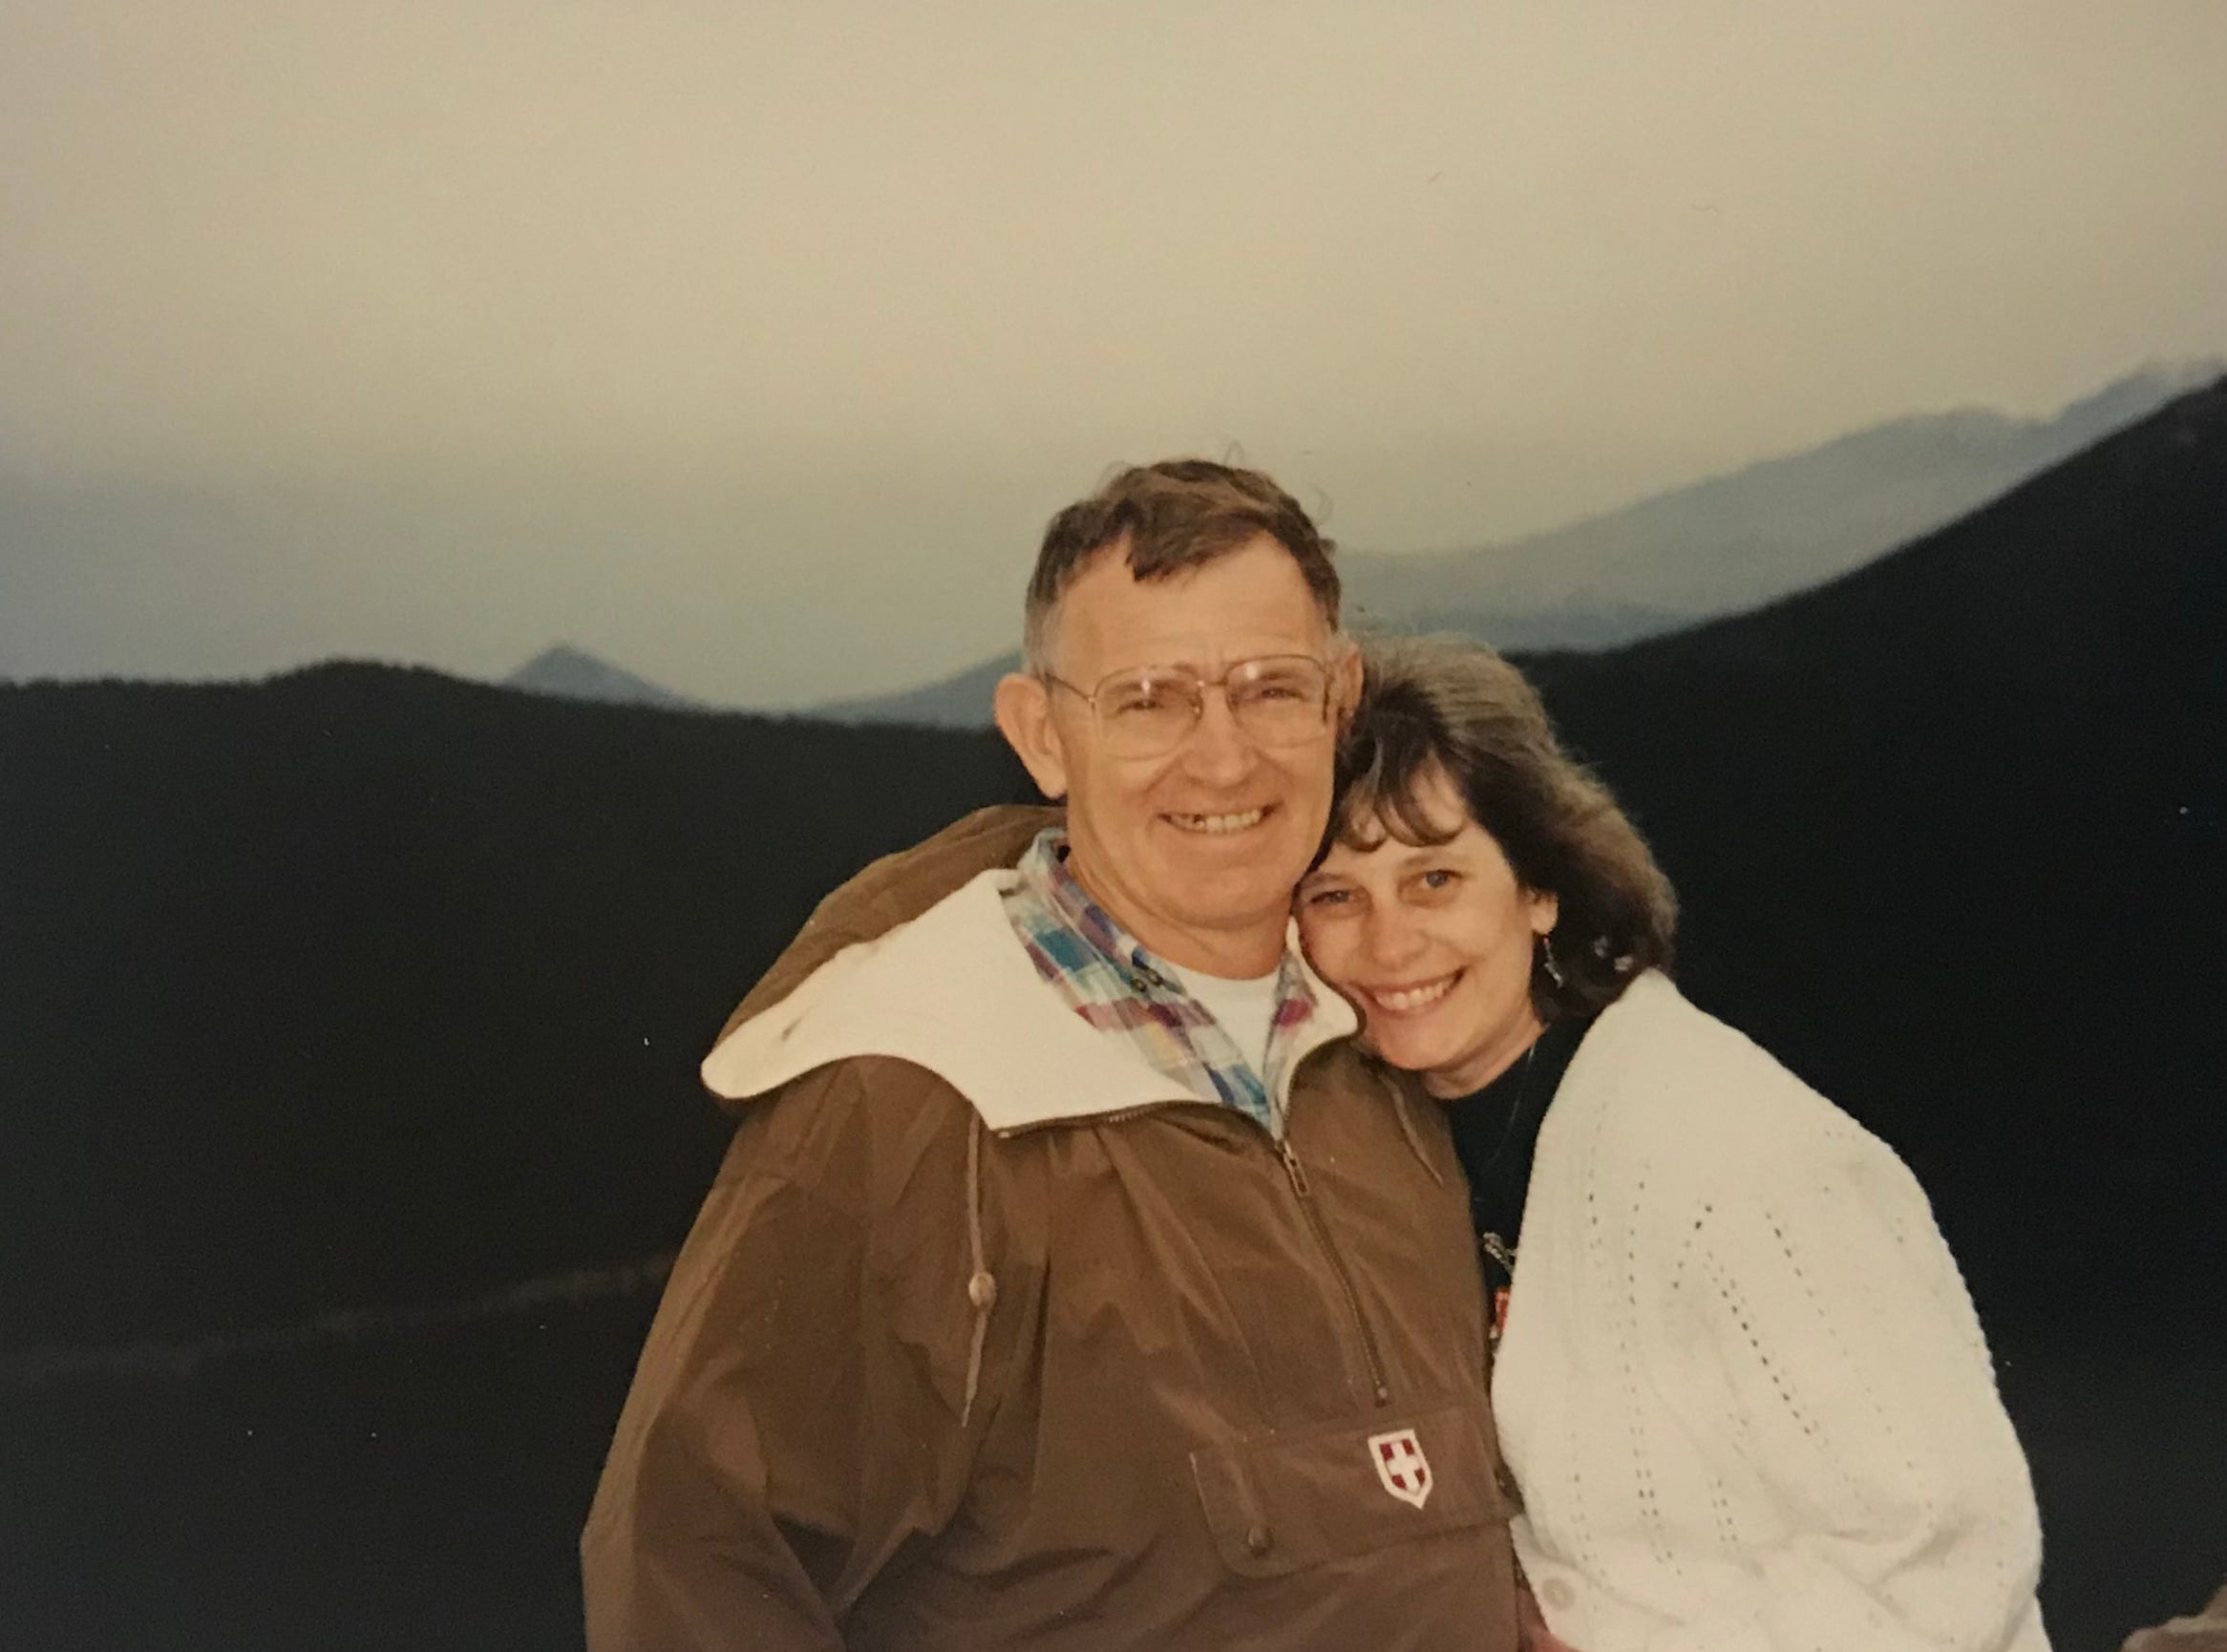 This is Kit and Marty Carson in Colorado back in 1994.